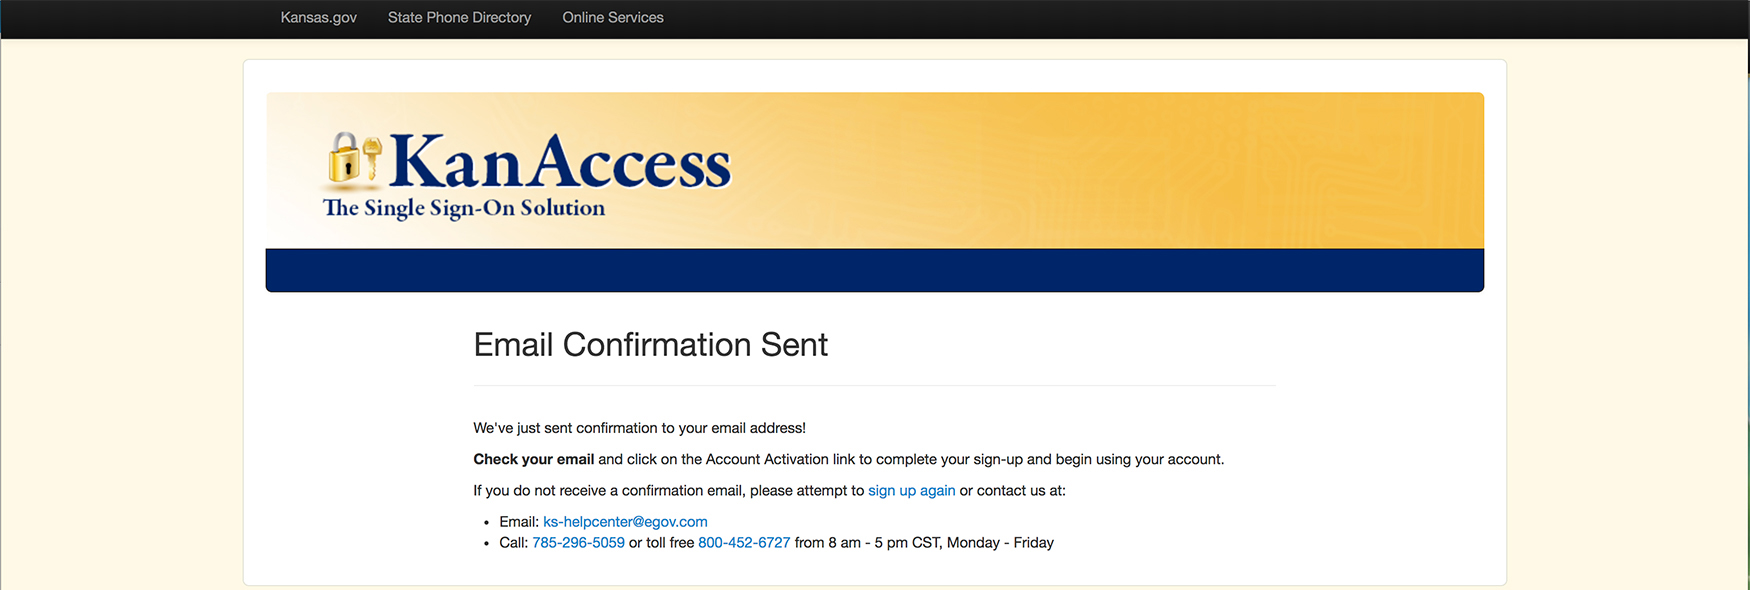 Email Sent for Account Creation